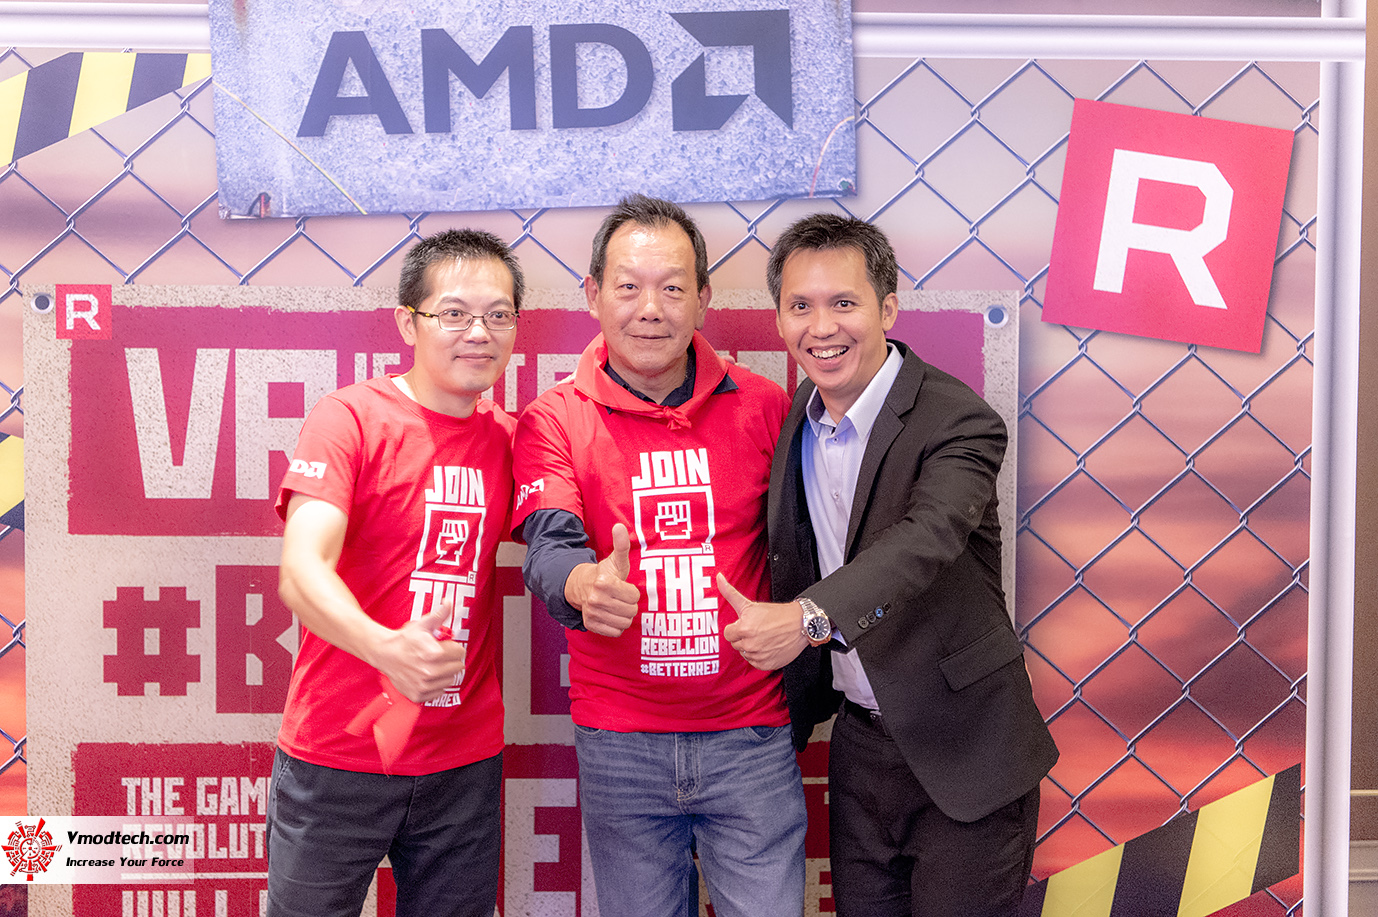 pd4 1208 ภาพบรรยากาศงาน AMD POLARIS LAUNCH IN BANGKOK CITY JOIN THE RADEON REBELLION